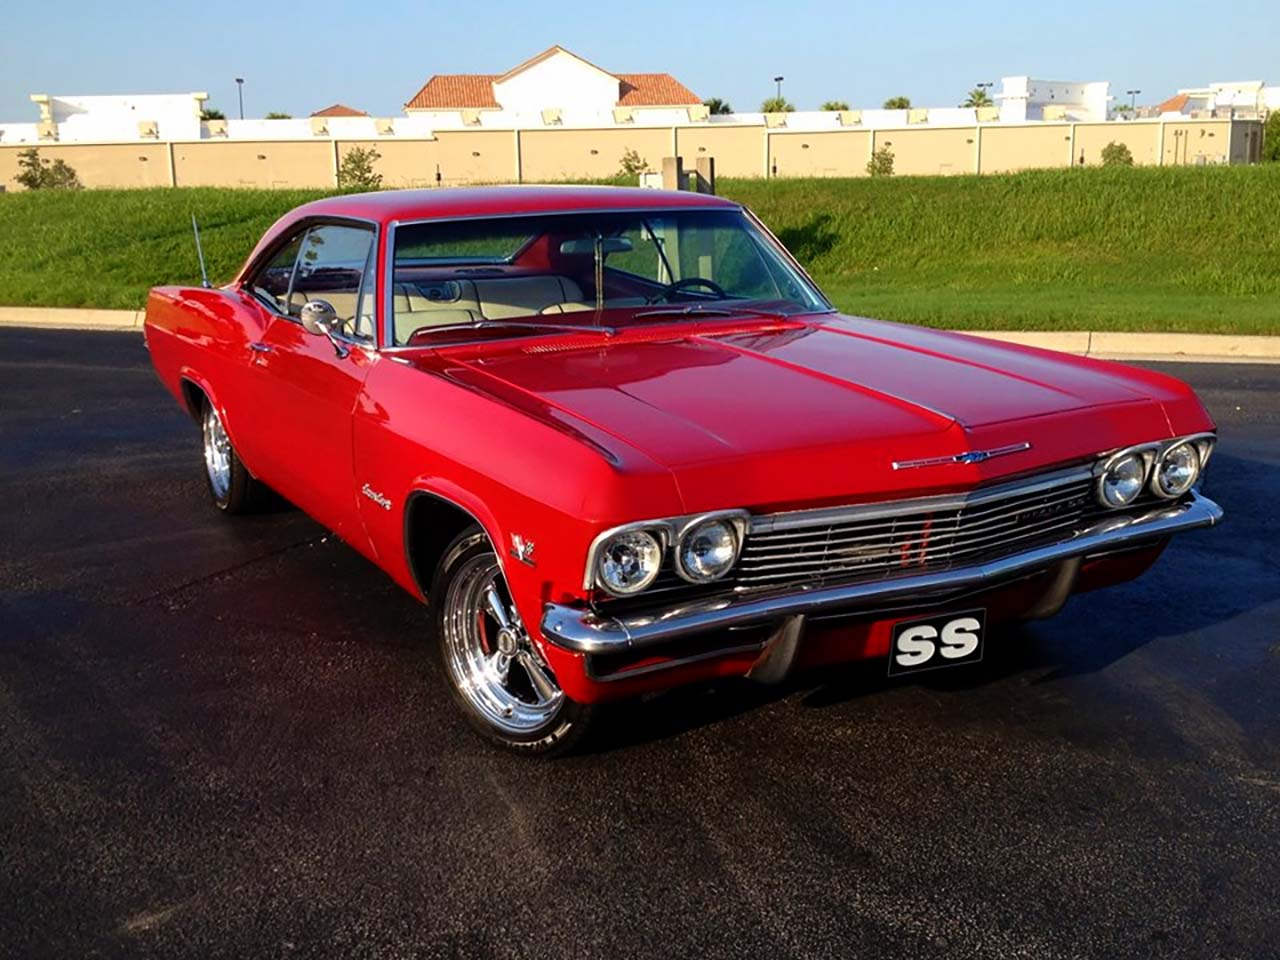 20 Classic & Badass Muscle Cars That Will Never Get Old #6: Chevrolet Impala SS (1965)